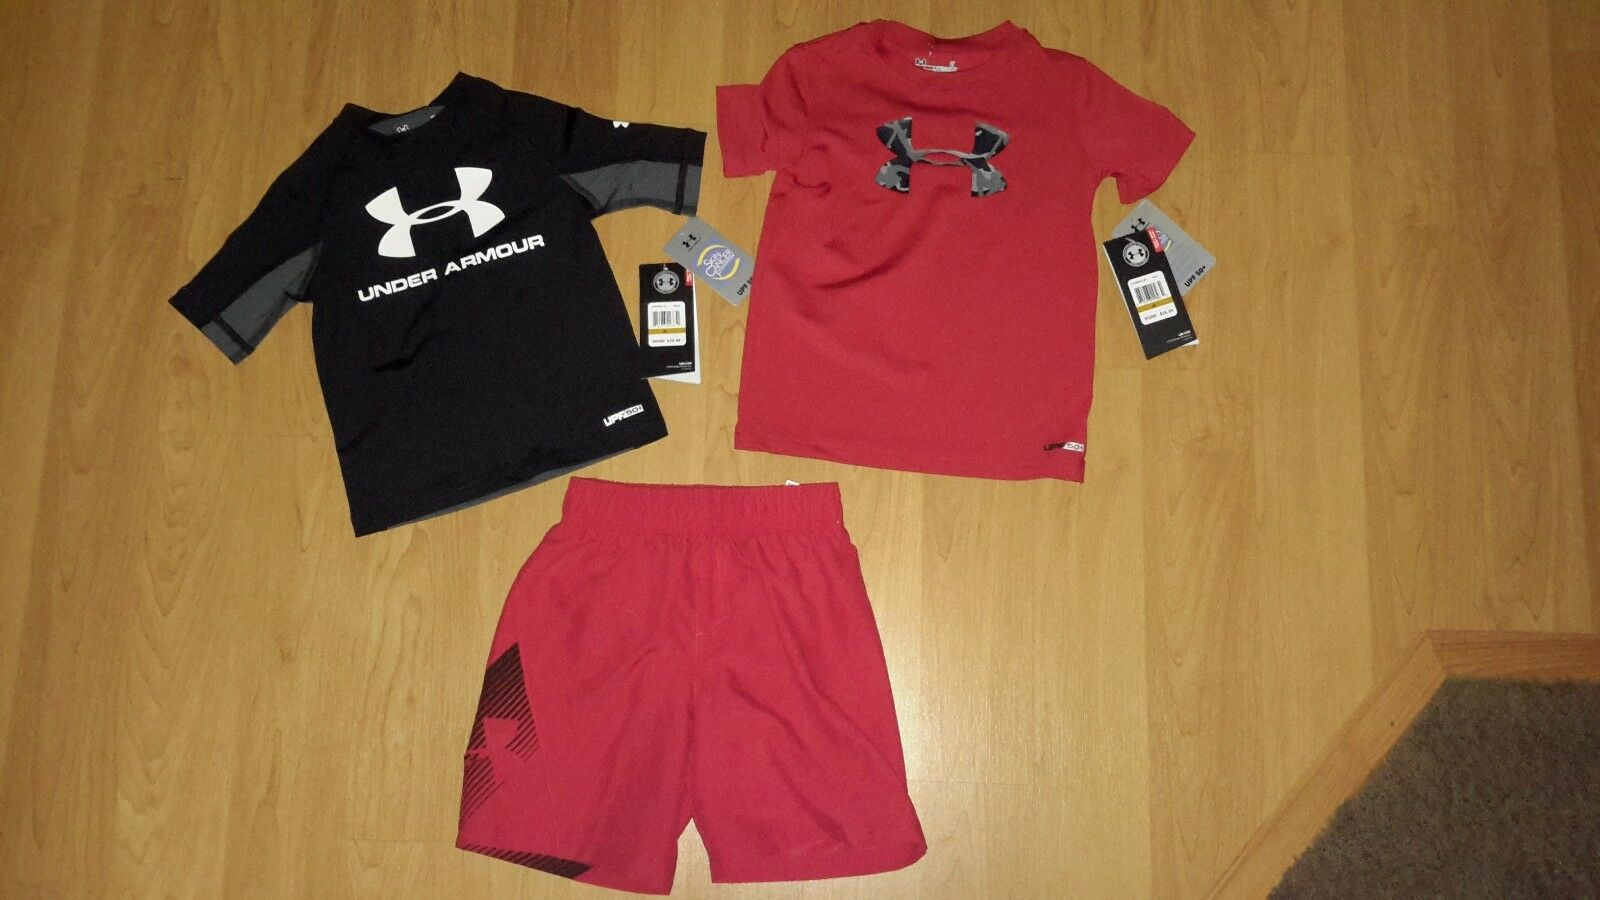 Under Armour Toddler Boys' Boardshorts OR Rashguard, MSRP $2